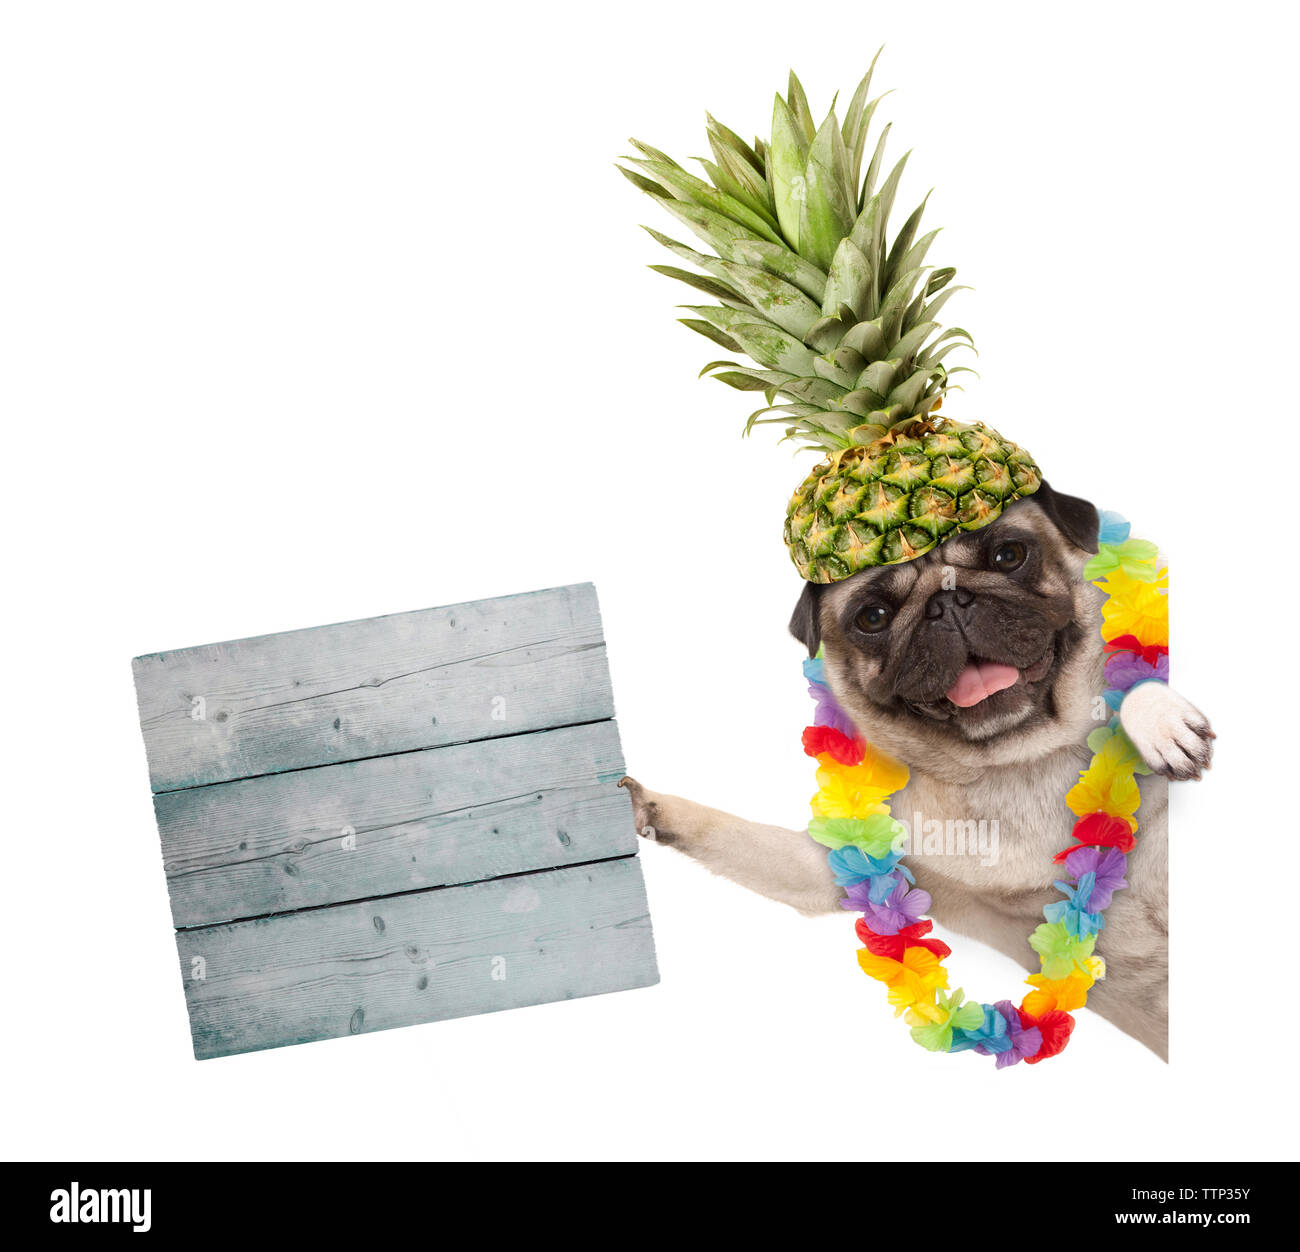 funny frolic summer pug dog with hawaiian flower garland and pineapple hat, holding wooden sign, isolated on white background Stock Photo